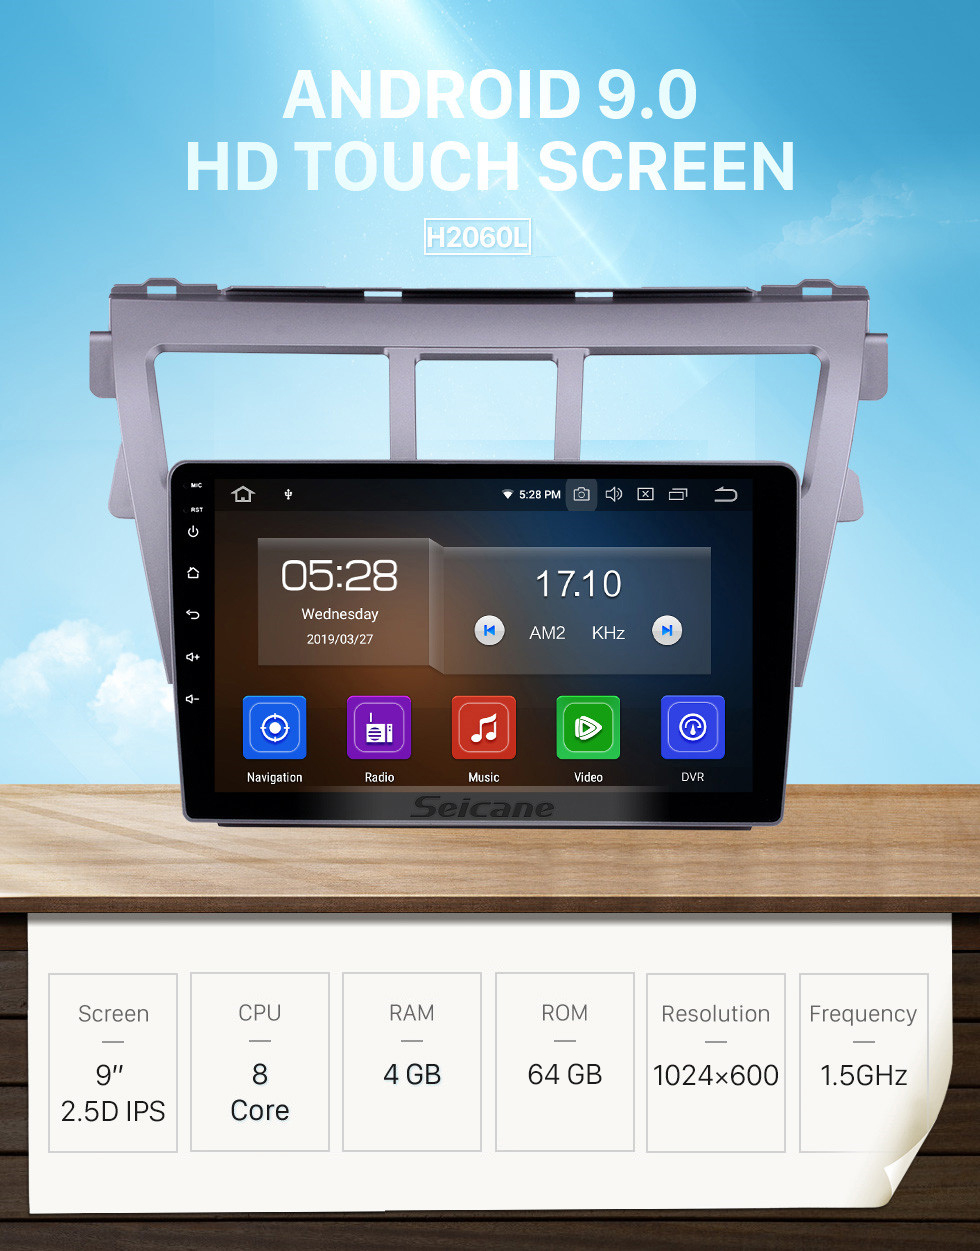 Seicane 9 Inch HD Touchscreen GPS Navigation System Auto stereo 2007-2012 Toyota Vios Android 9.0 Support Car Stereo OBDII  3G/4G WIFI Video Steering Wheel Control DVR